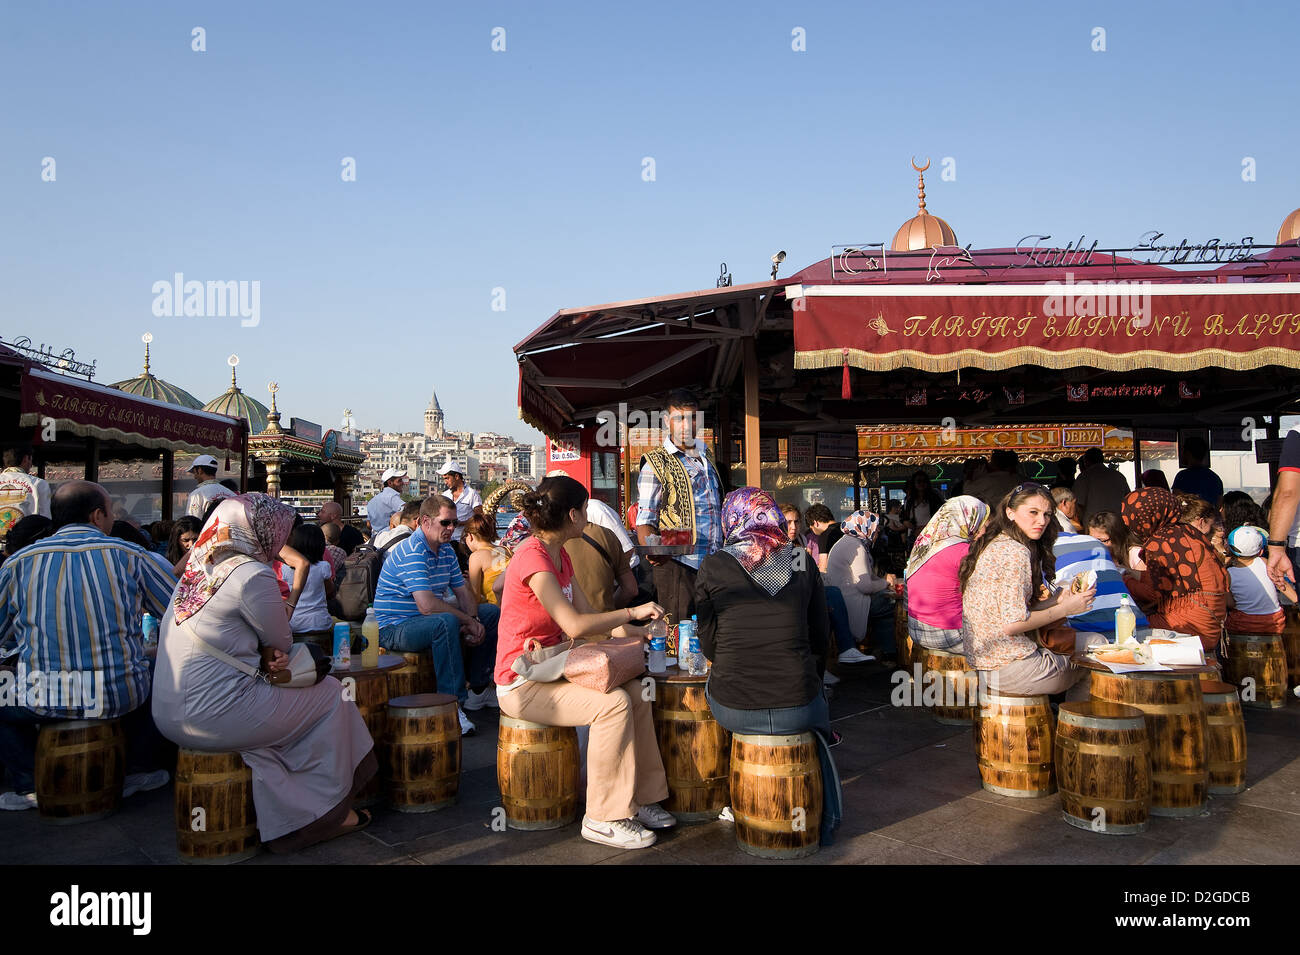 Tourists and Turks alike love to eat fishbread at the waterfront of the Golden Horn in Eminonu at the end of Galata - Stock Image